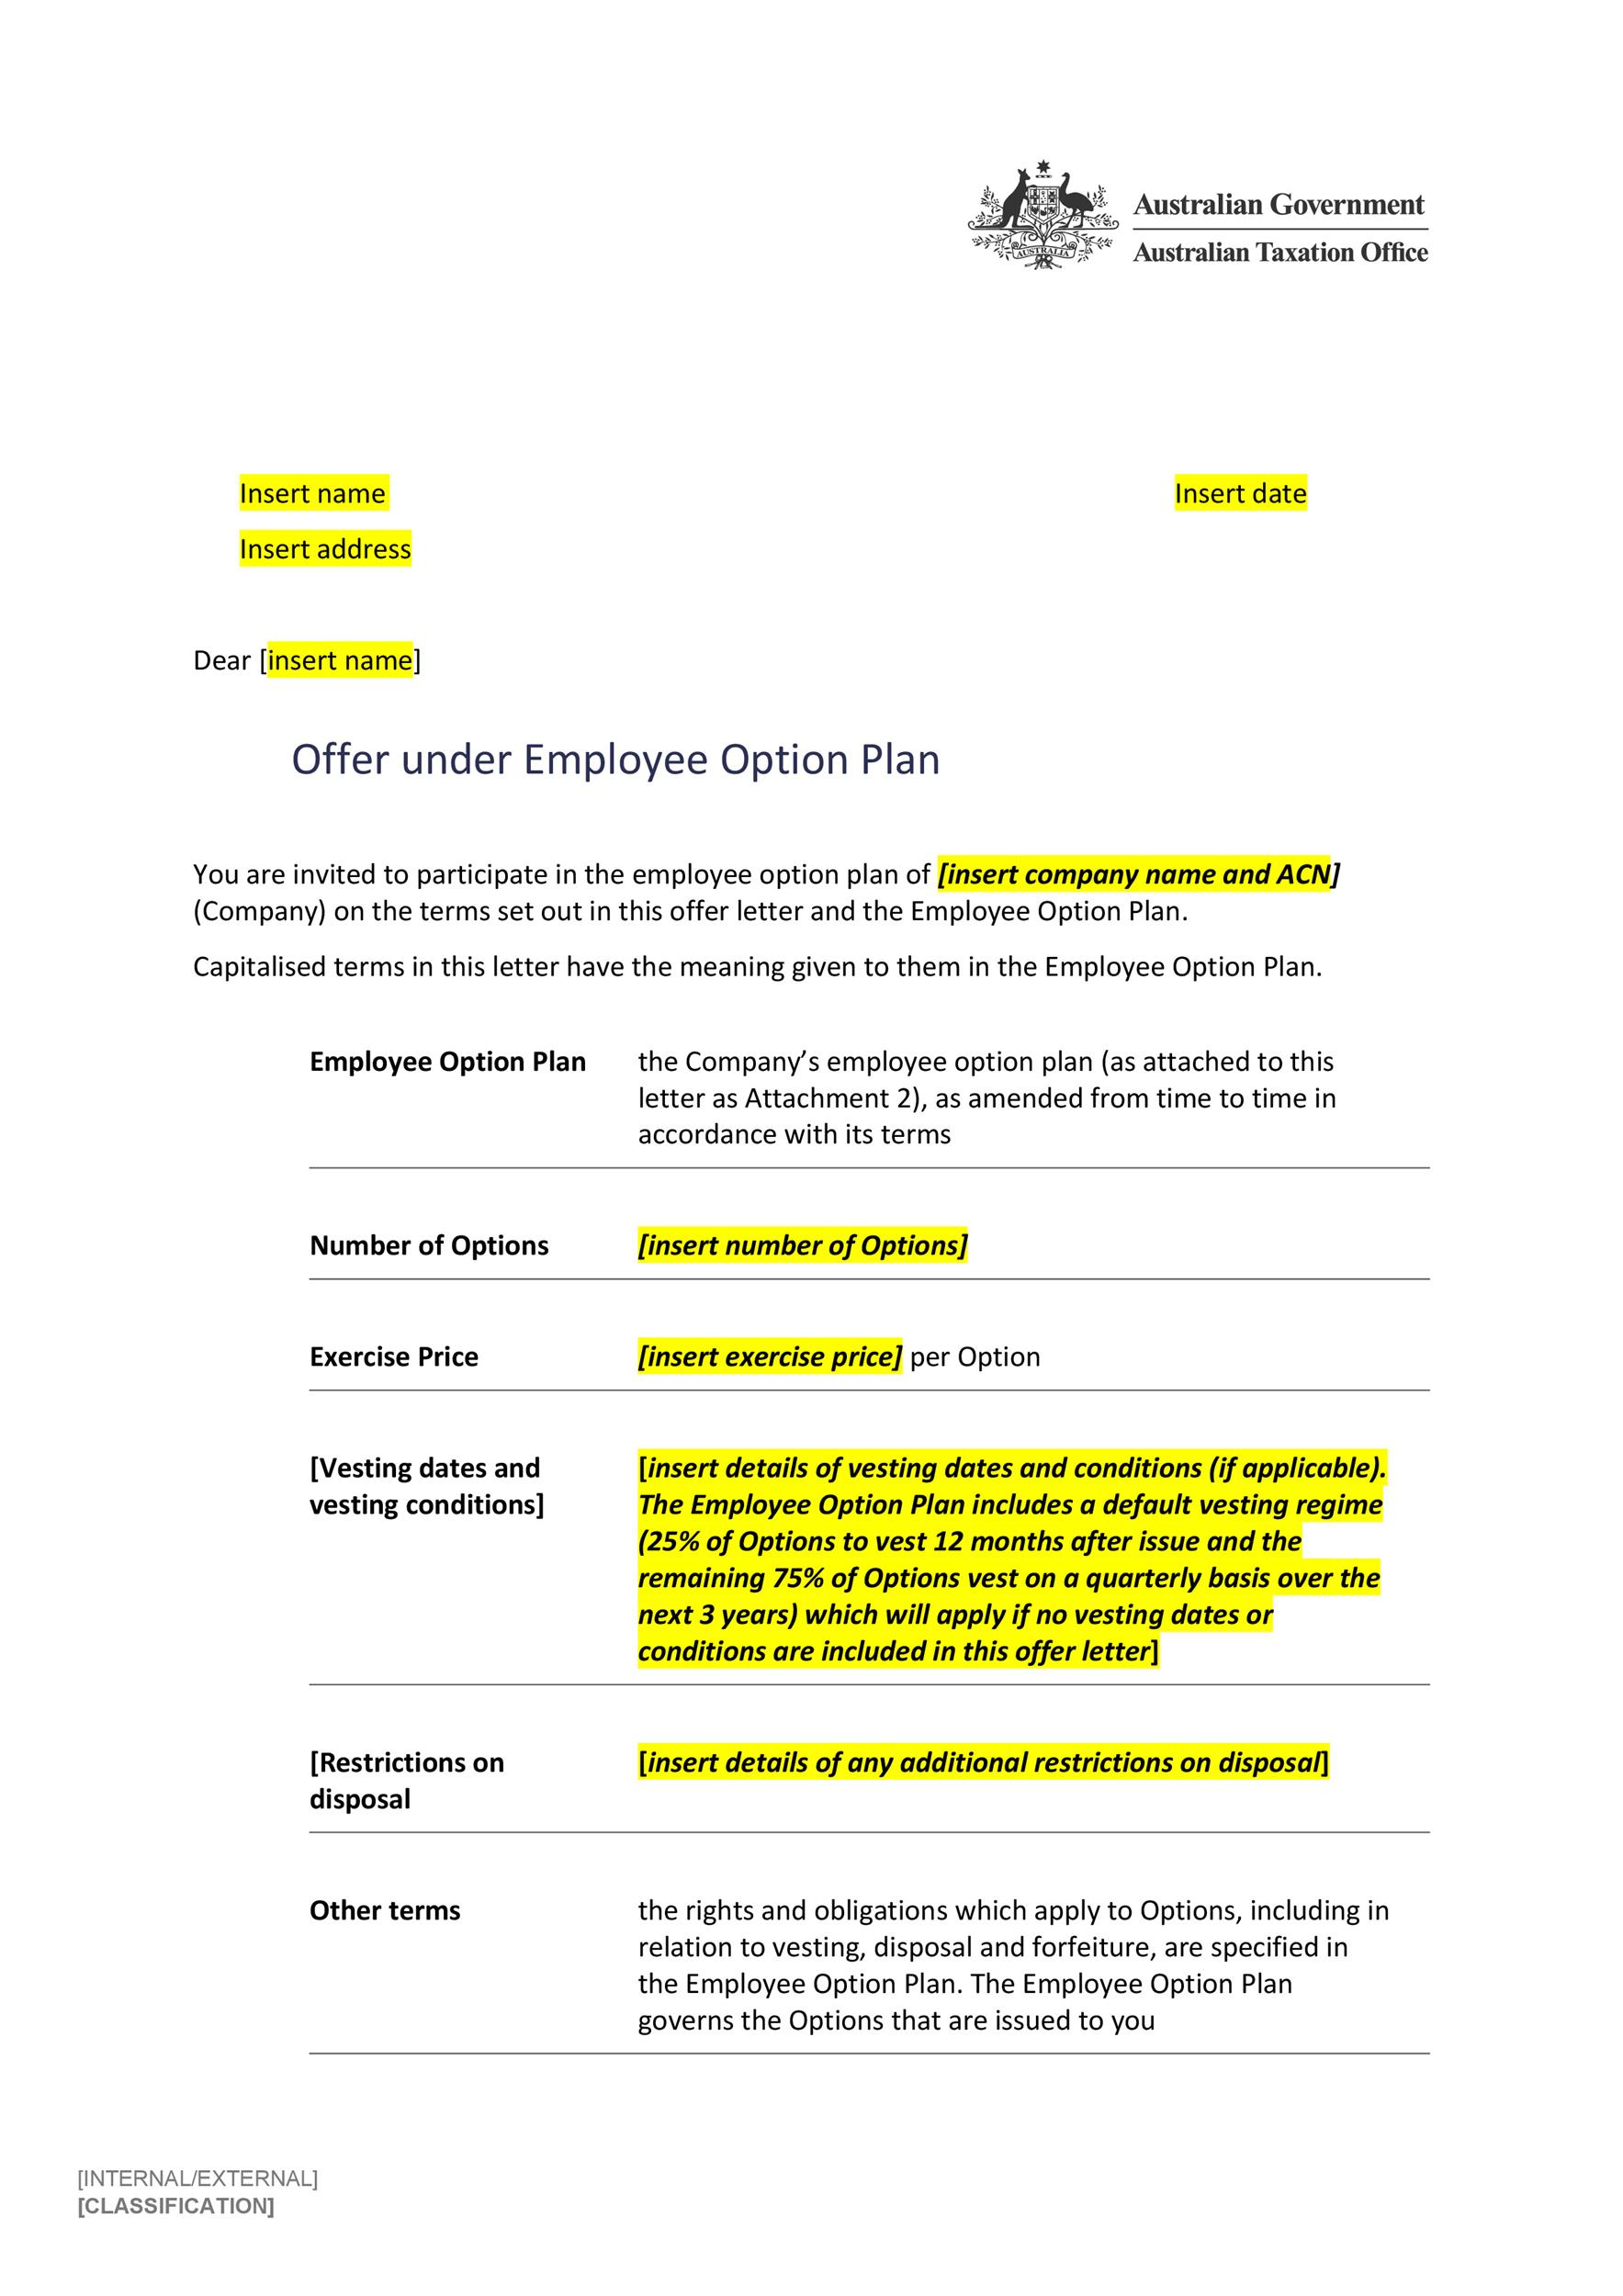 offer-letter-10 Salary Counter Offer Letter Template on proposal letter, for business acquisition, insurance claim, salary sample email,